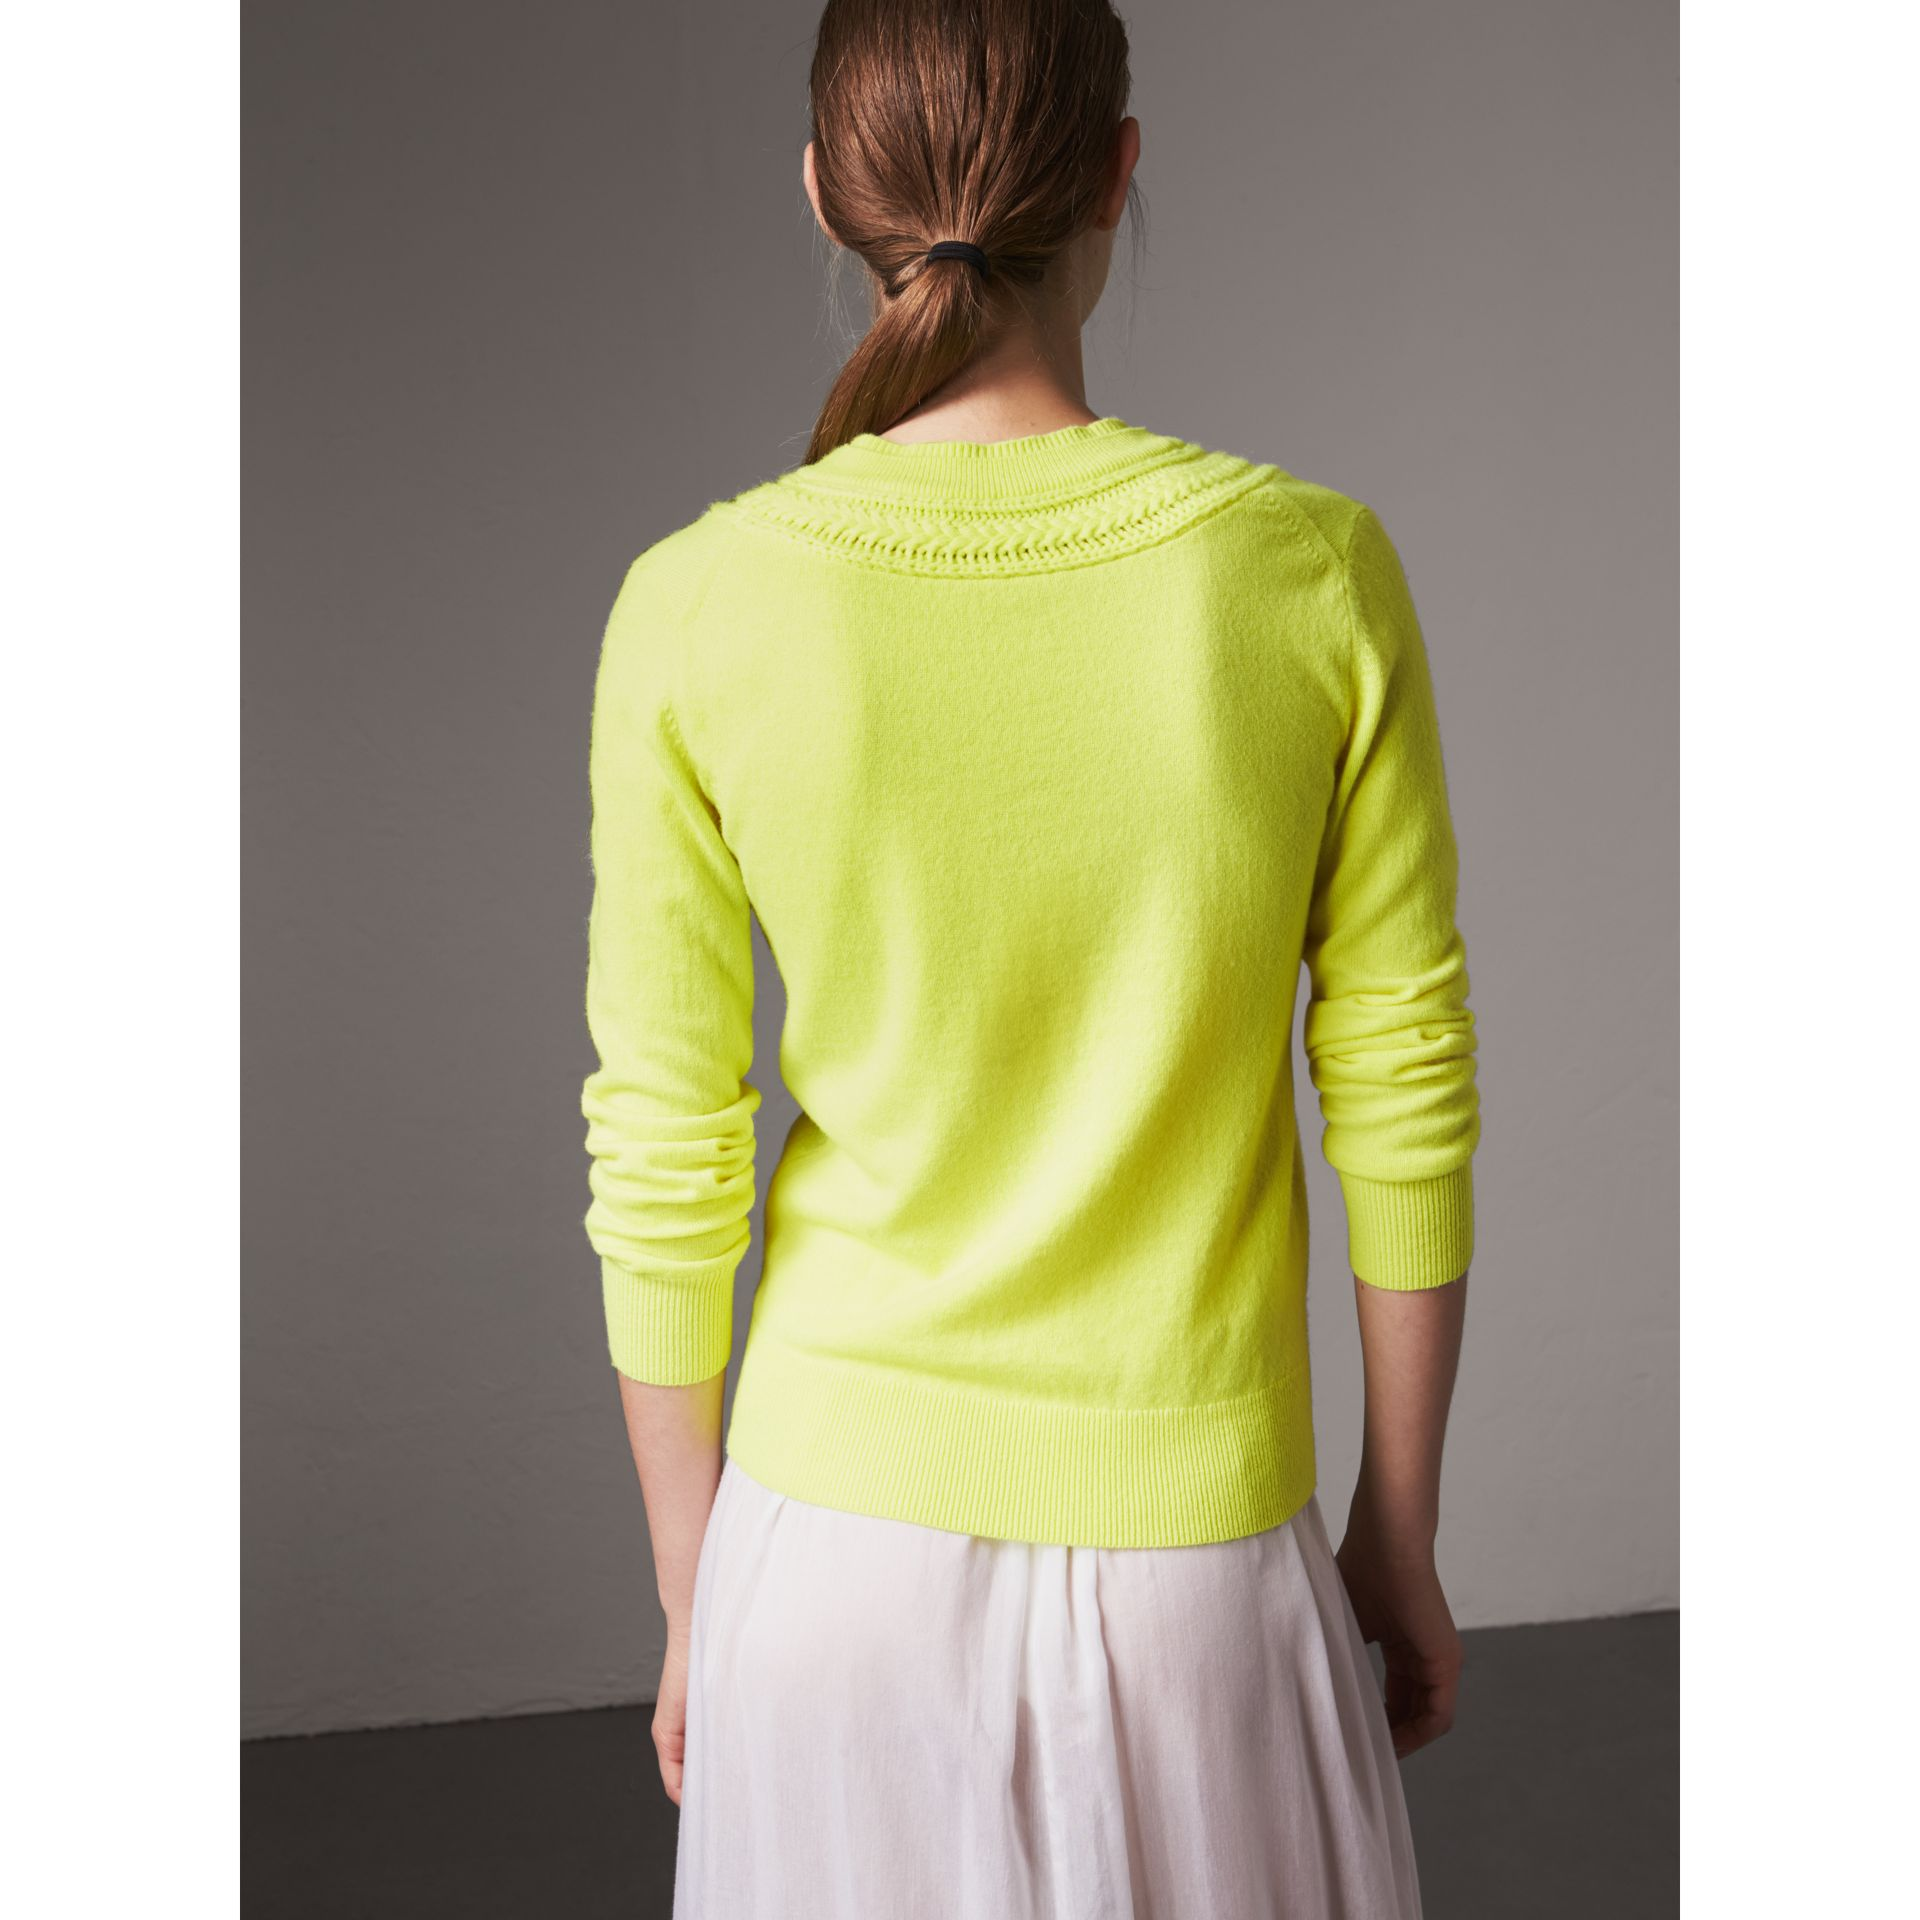 Cable Knit Yoke Cashmere Sweater in Fluorescent Yellow - Women | Burberry - gallery image 2